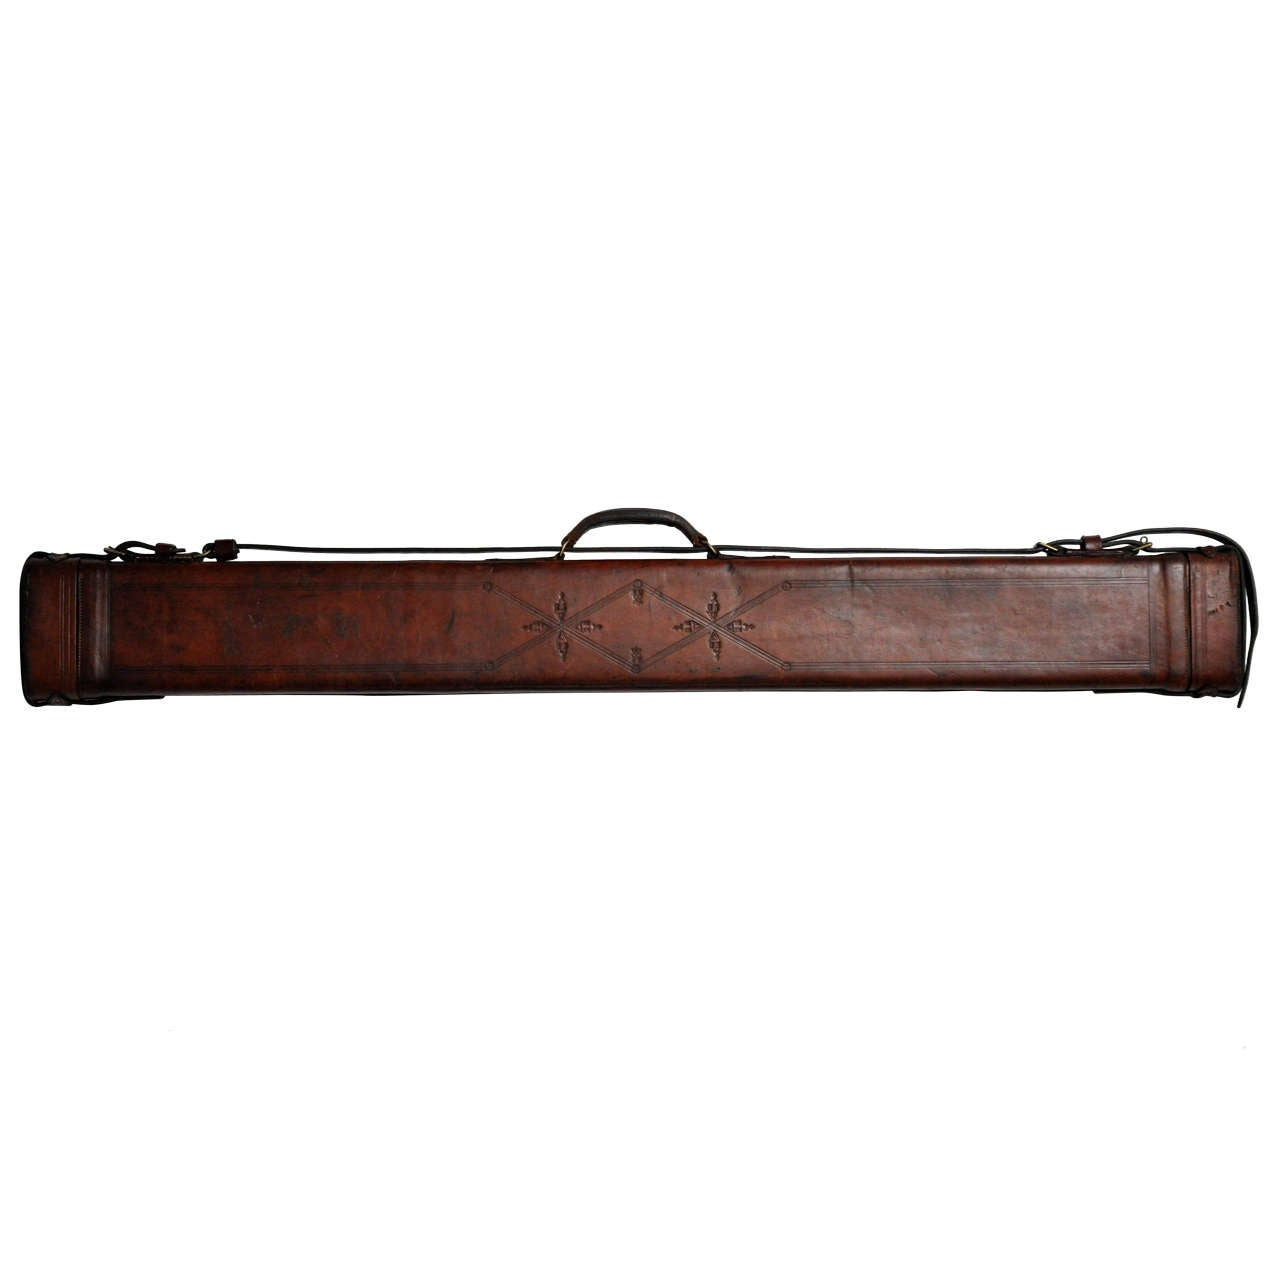 American leather fishing rod case circa 1920 at 1stdibs for Fishing rod cases